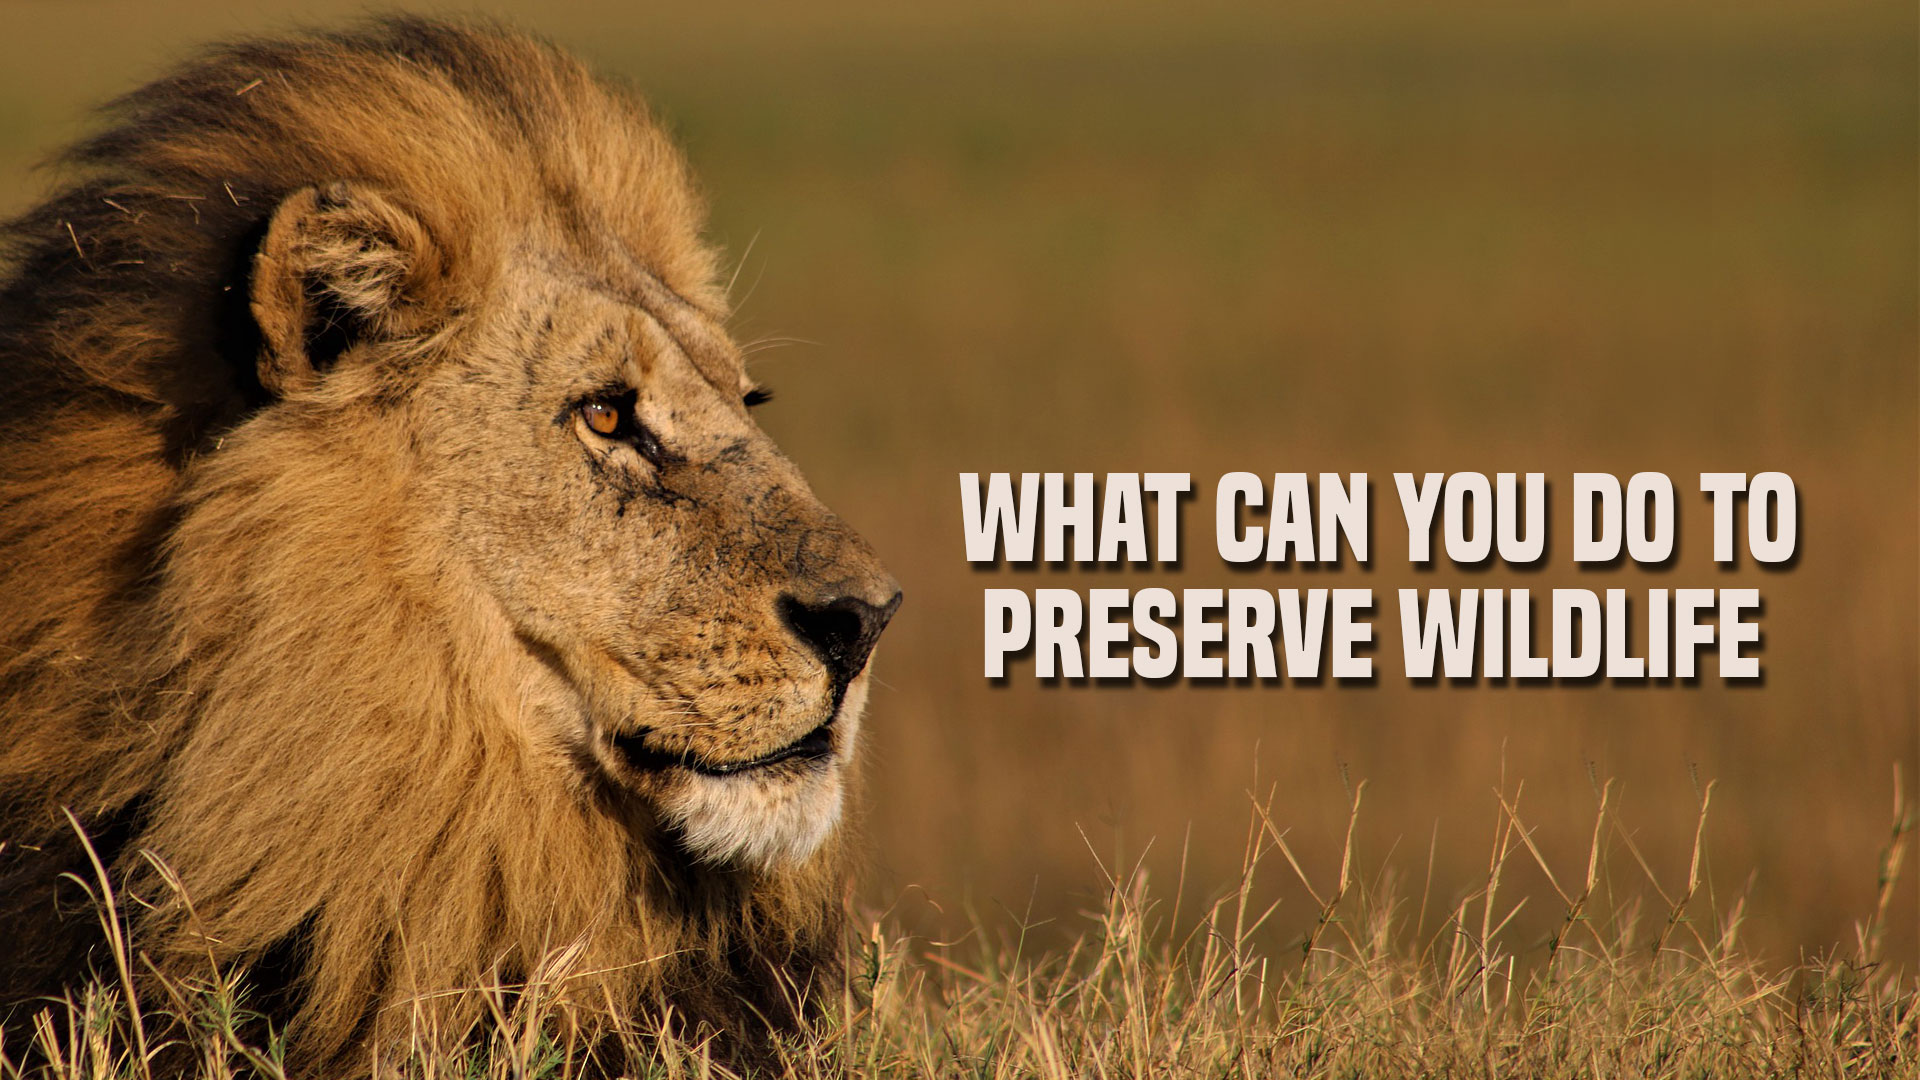 What Can You Do To Preserve Wildlife